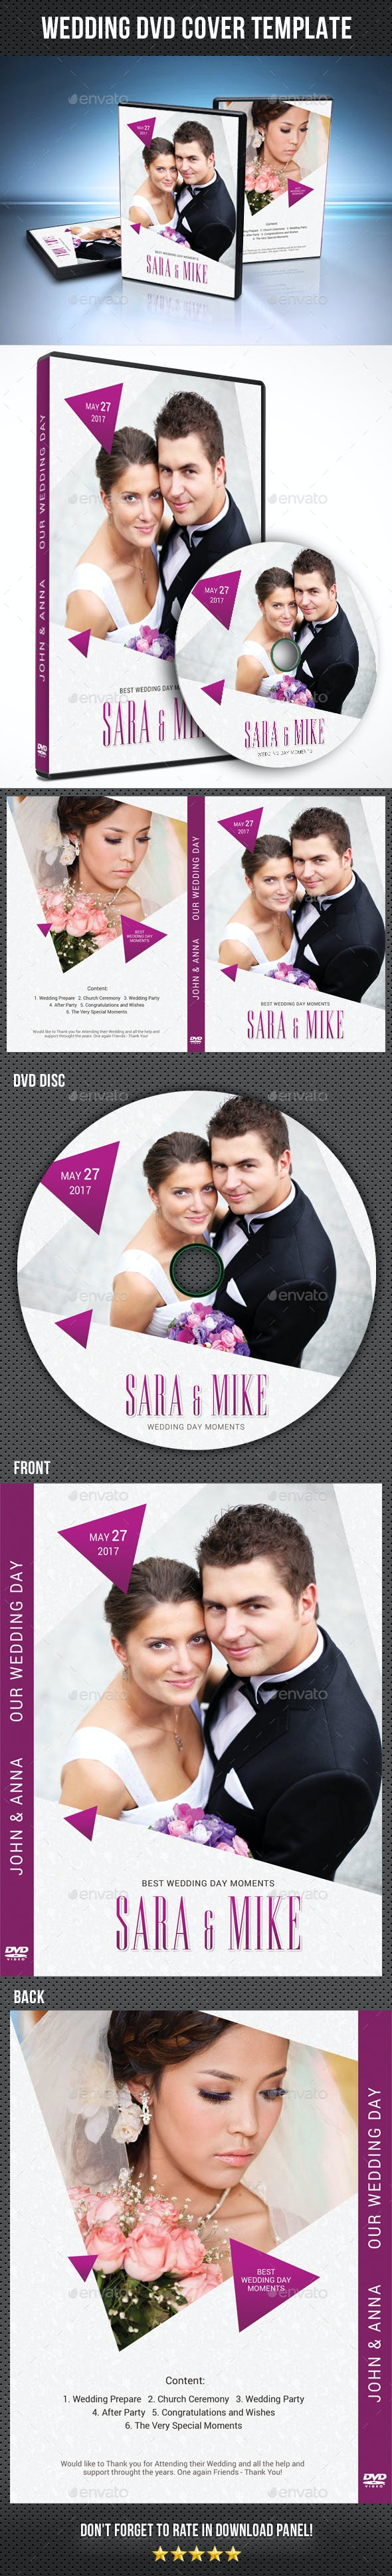 wedding dvd cover template 22 by rapidgraf graphicriver